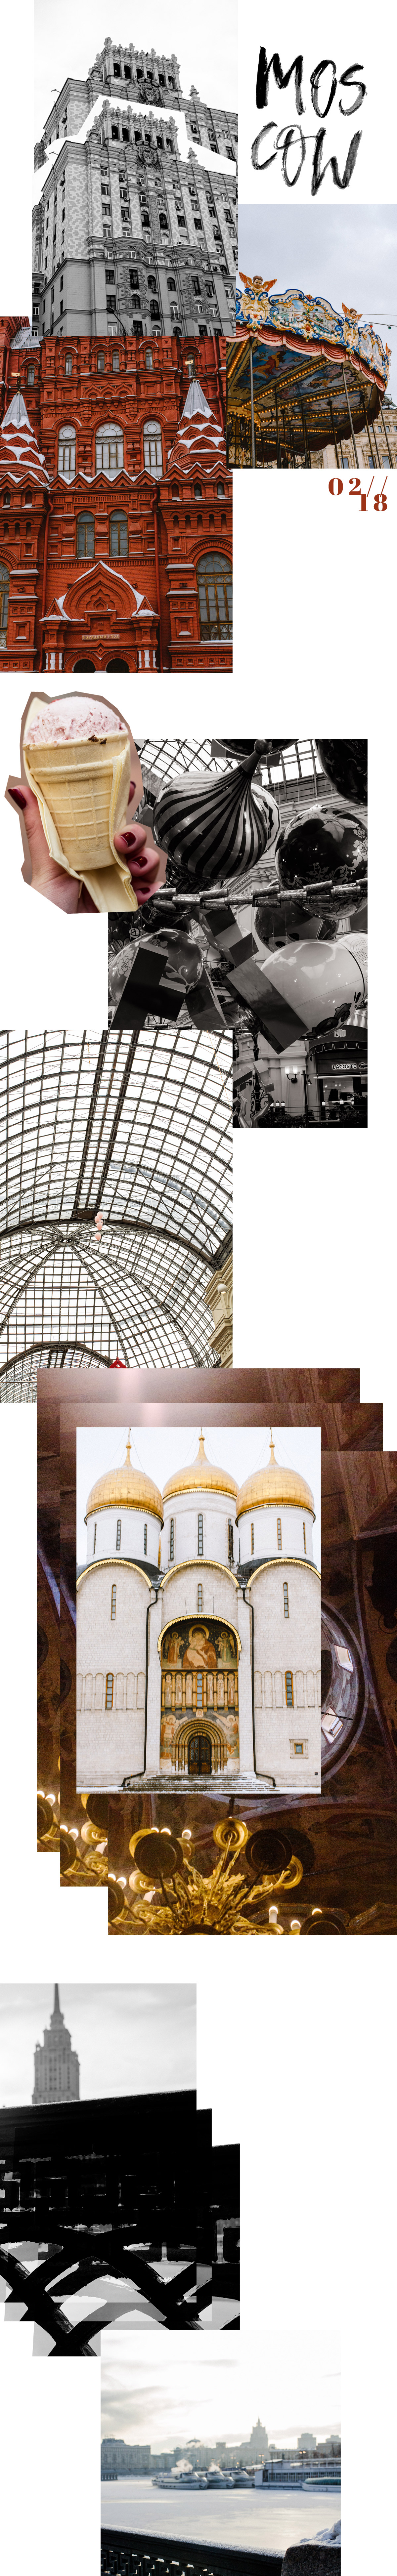 Moscow-Collage.jpg